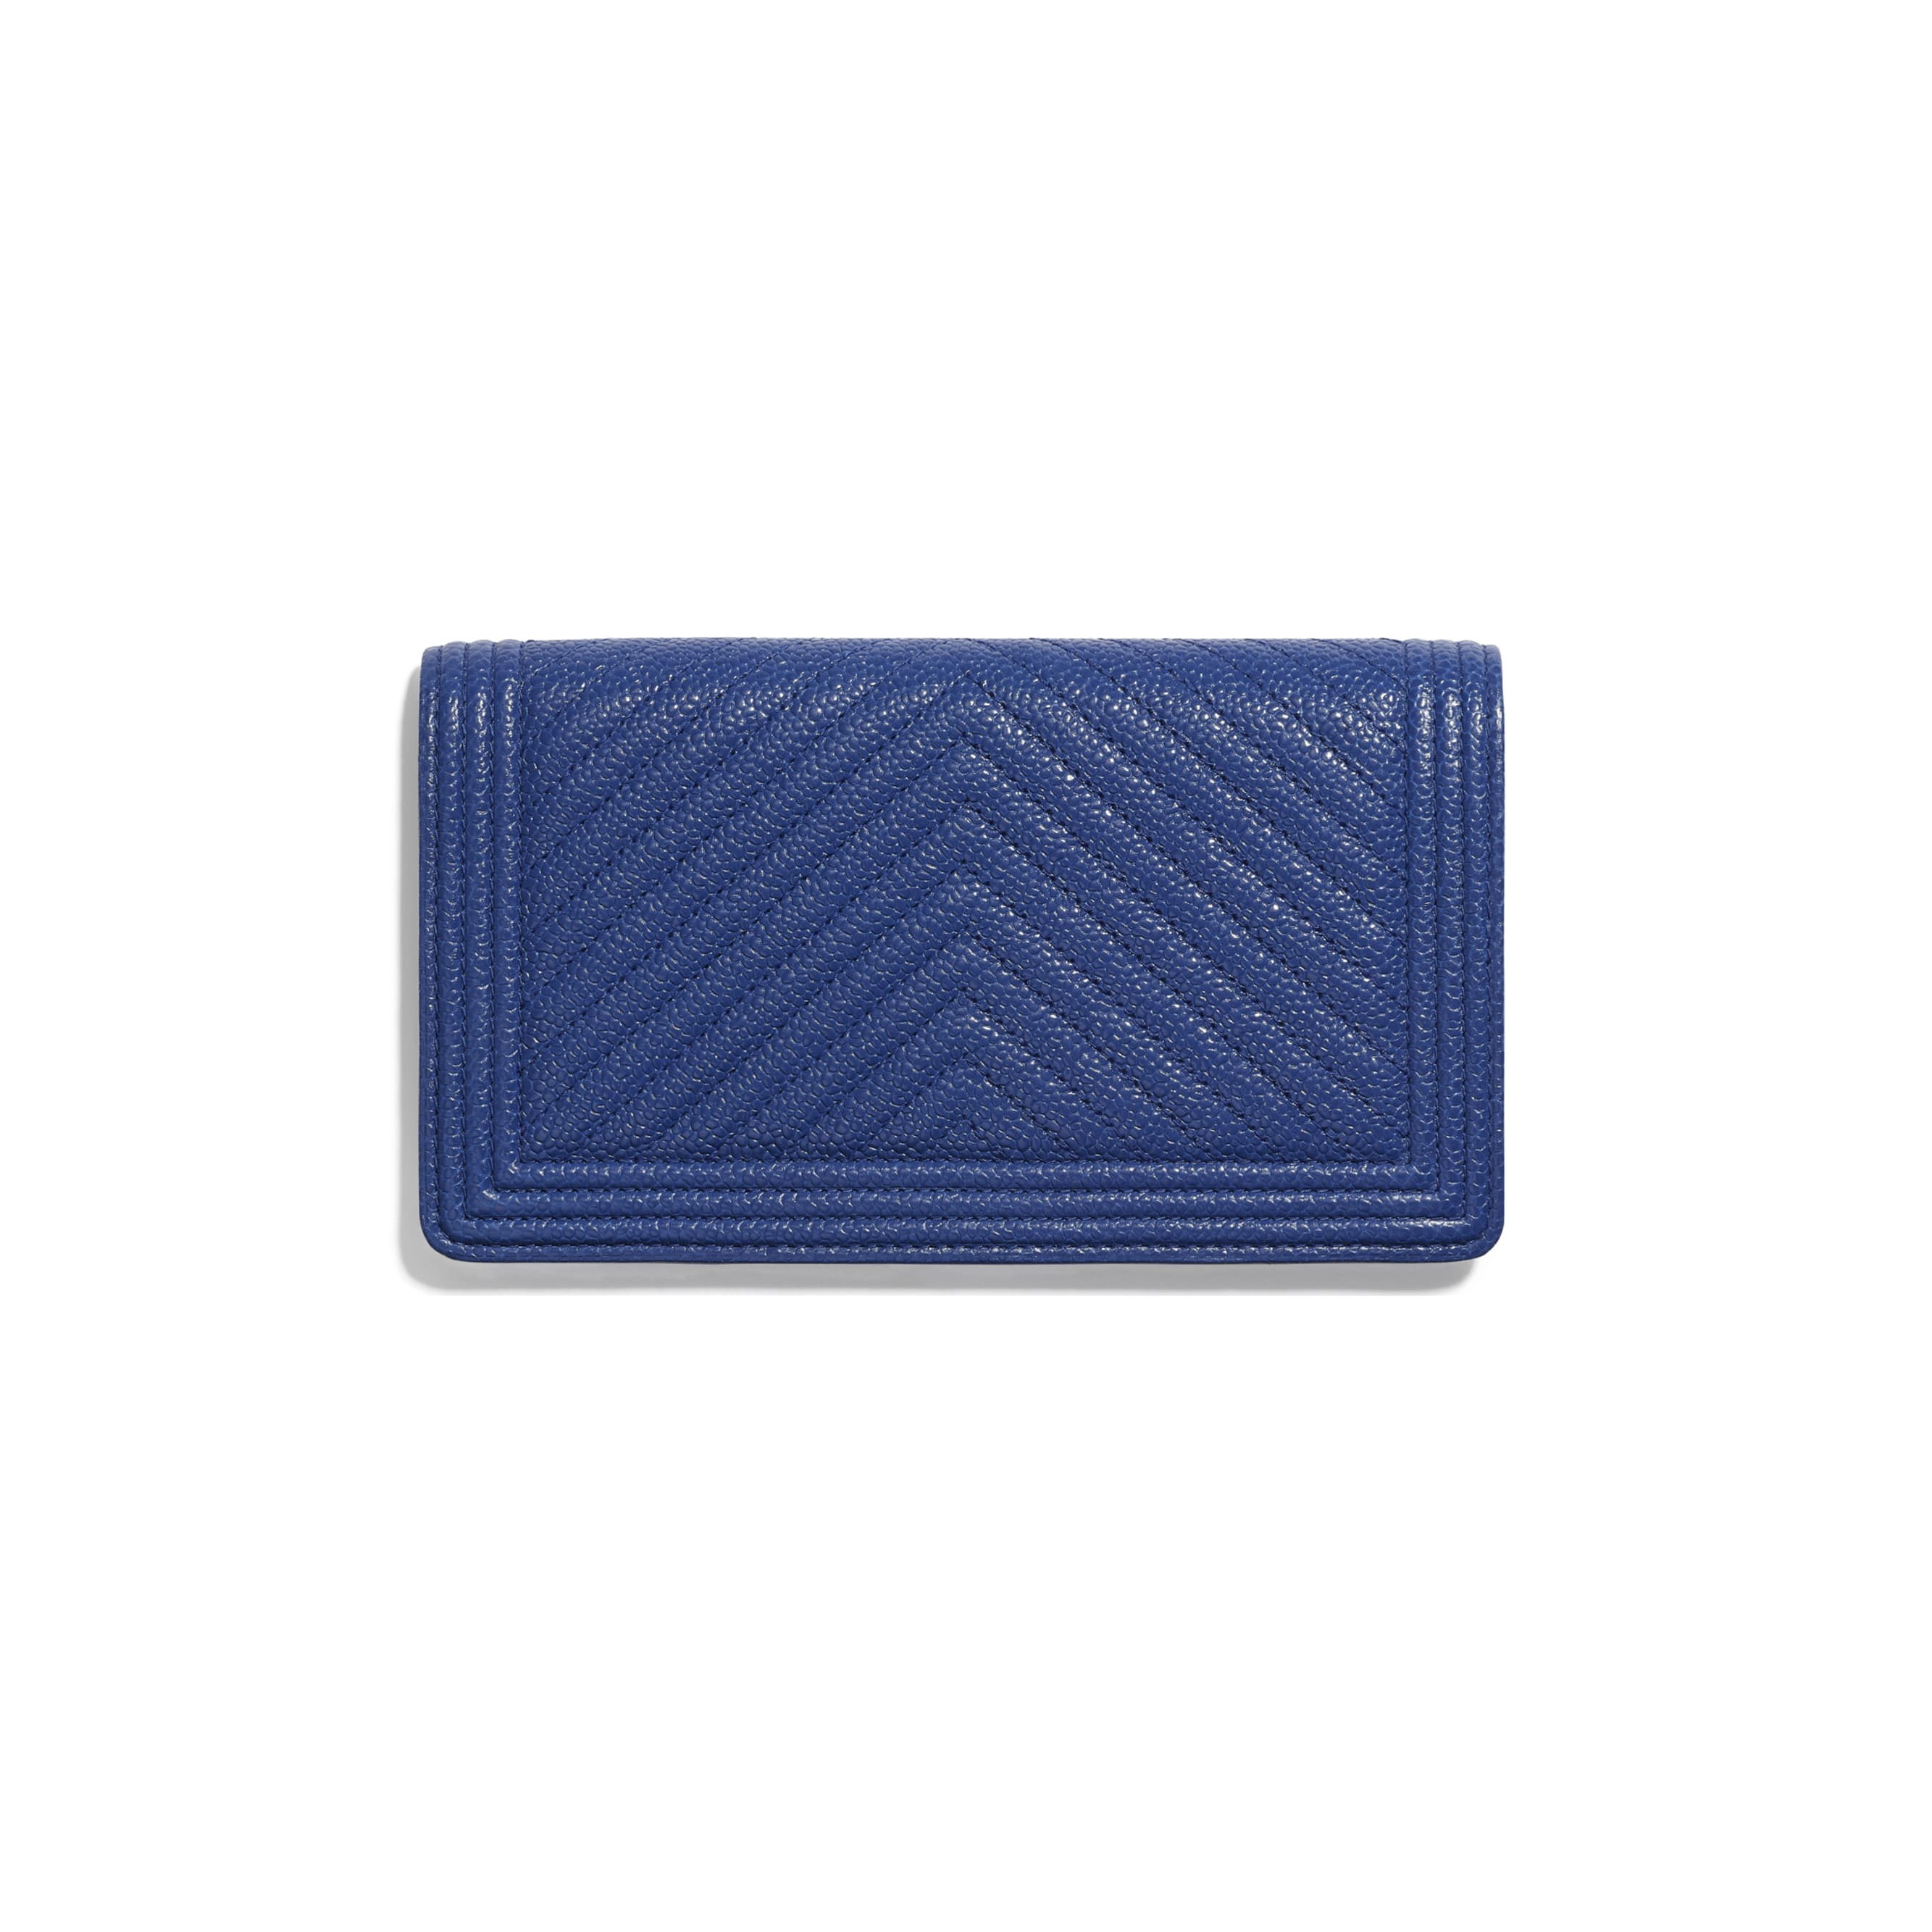 BOY CHANEL Long Flap Wallet - Dark Blue - Shiny Grained Calfskin & Silver-Tone Metal - CHANEL - Alternative view - see standard sized version